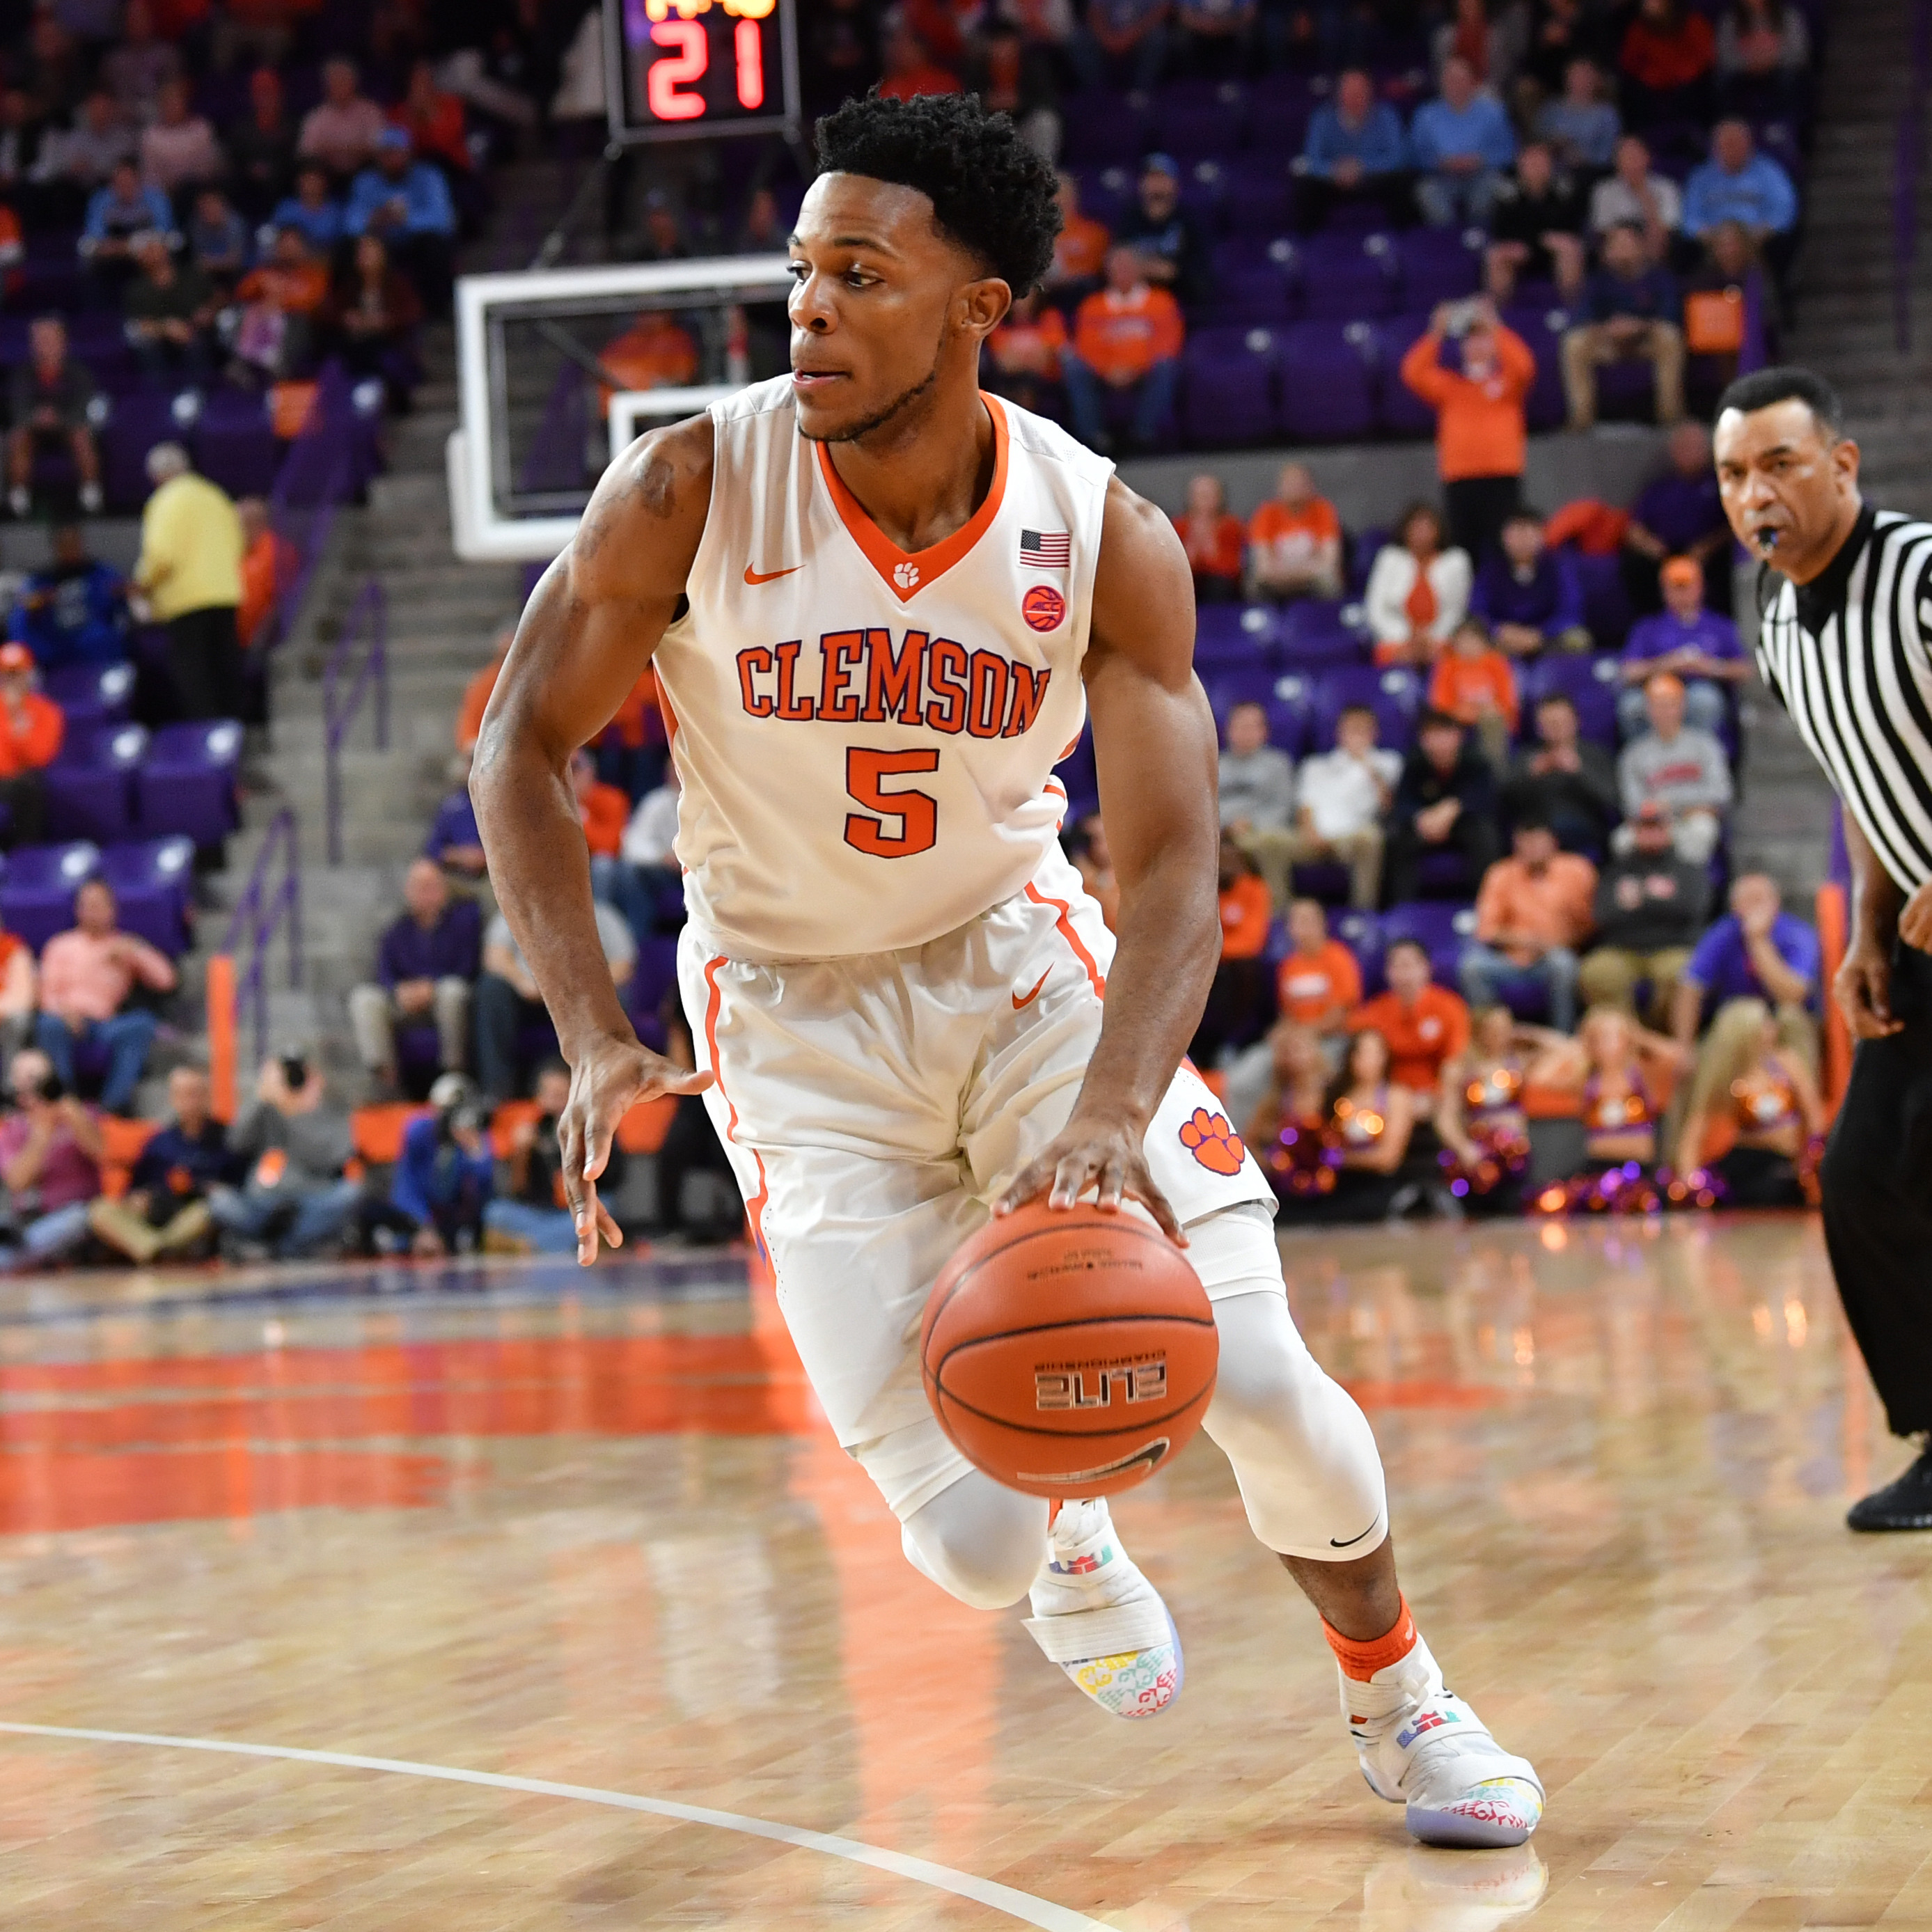 Tigers Fall in OT Thriller, 89-86